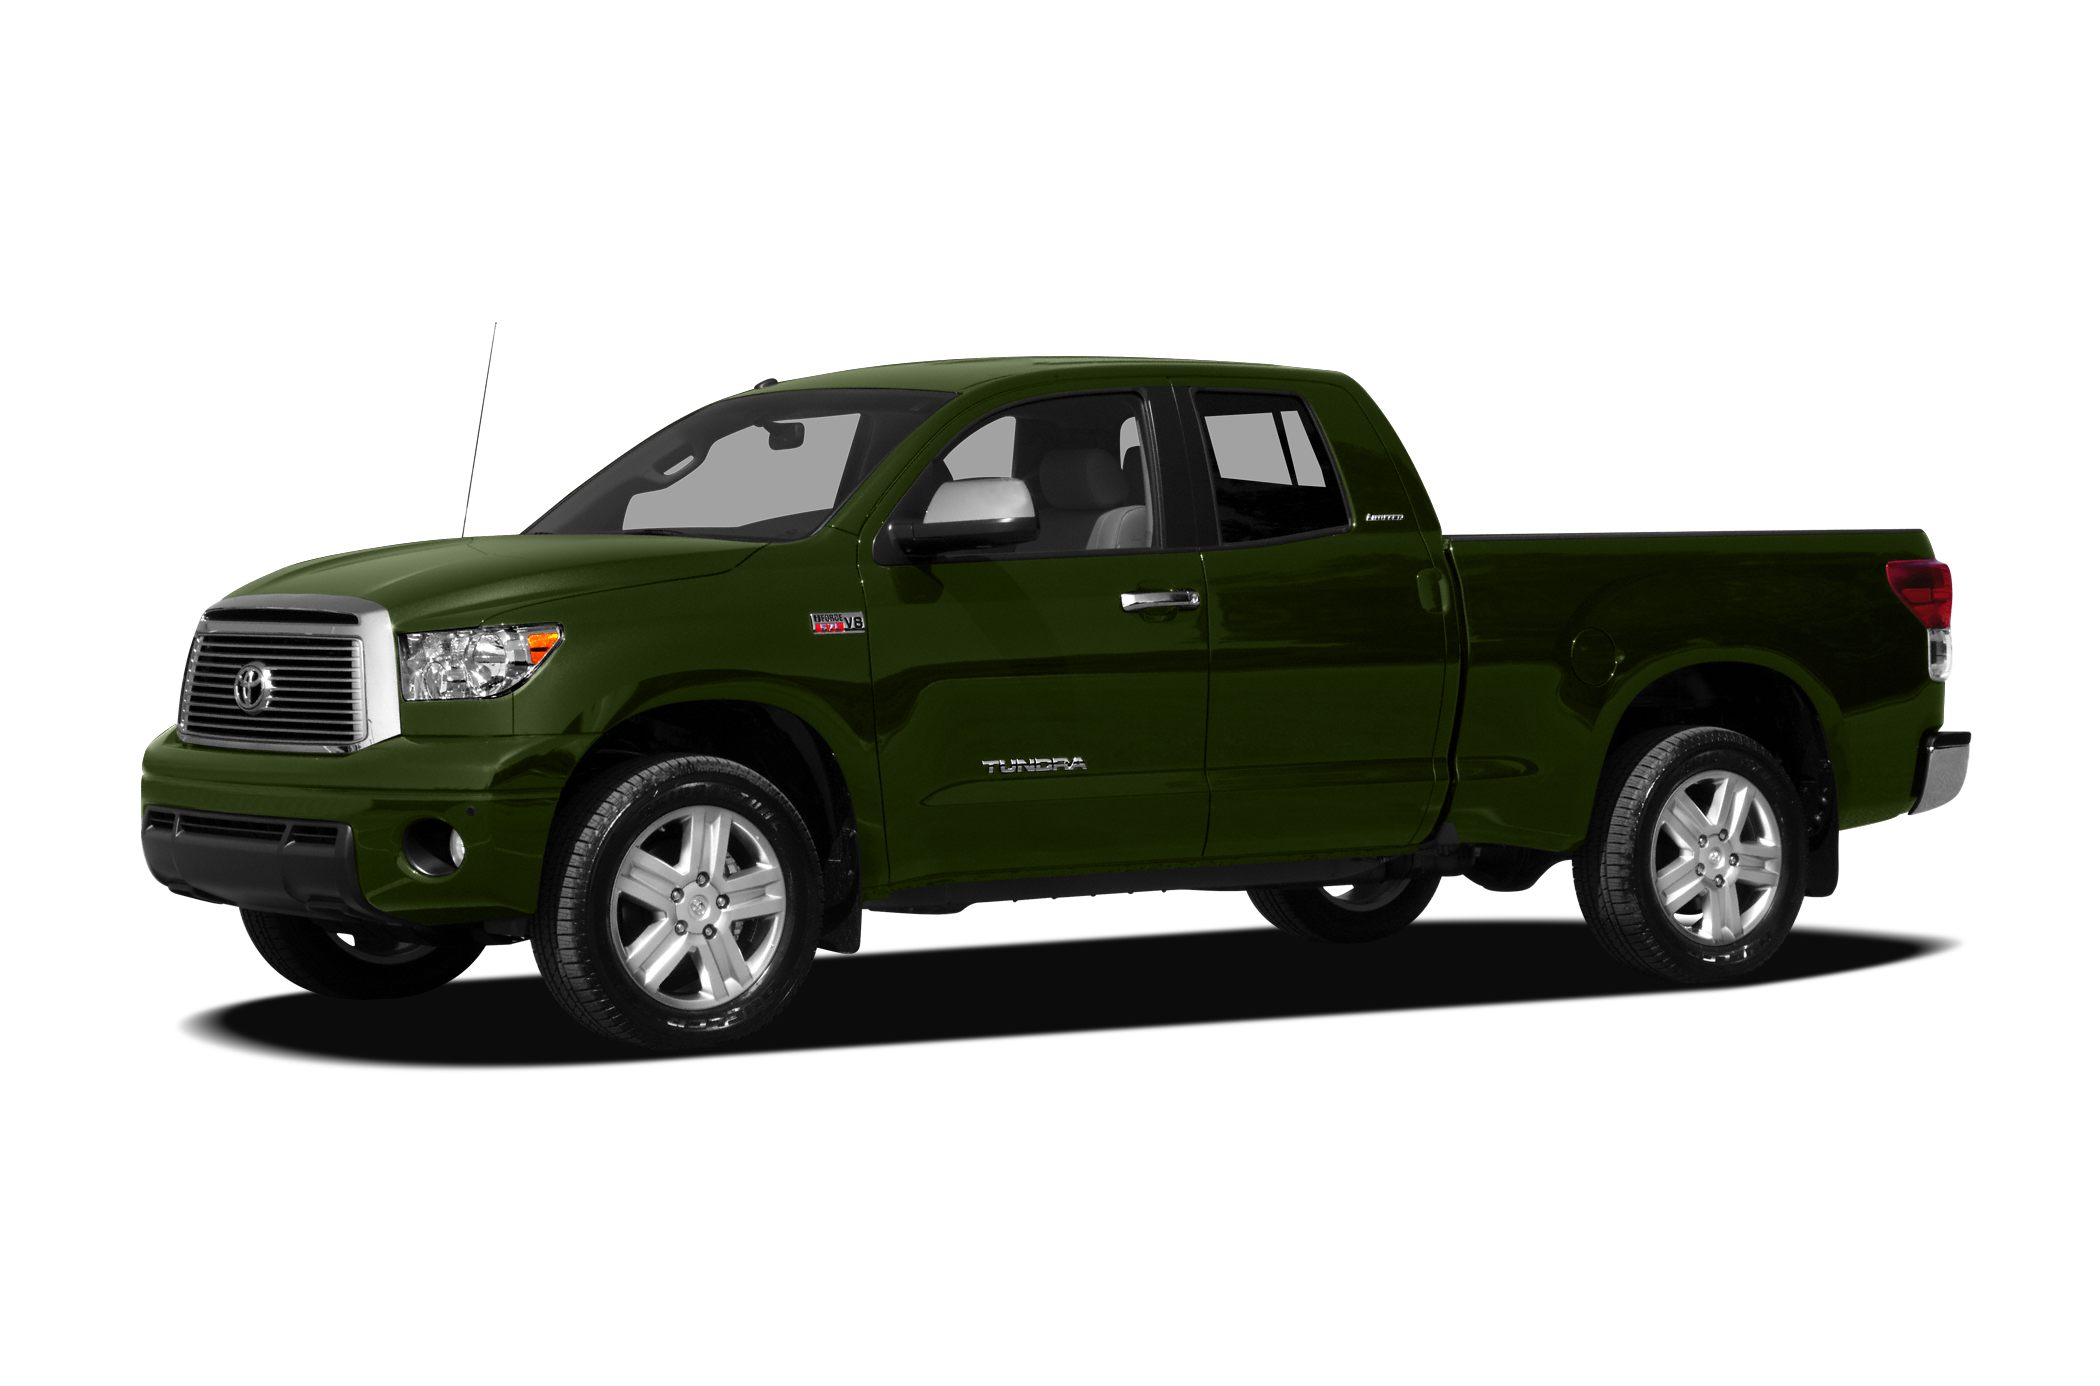 2011 Toyota Tundra Grade >> 2011 Toyota Tundra Grade 4 6l V8 4x4 Double Cab 6 6 Ft Box 145 7 In Wb Specs And Prices